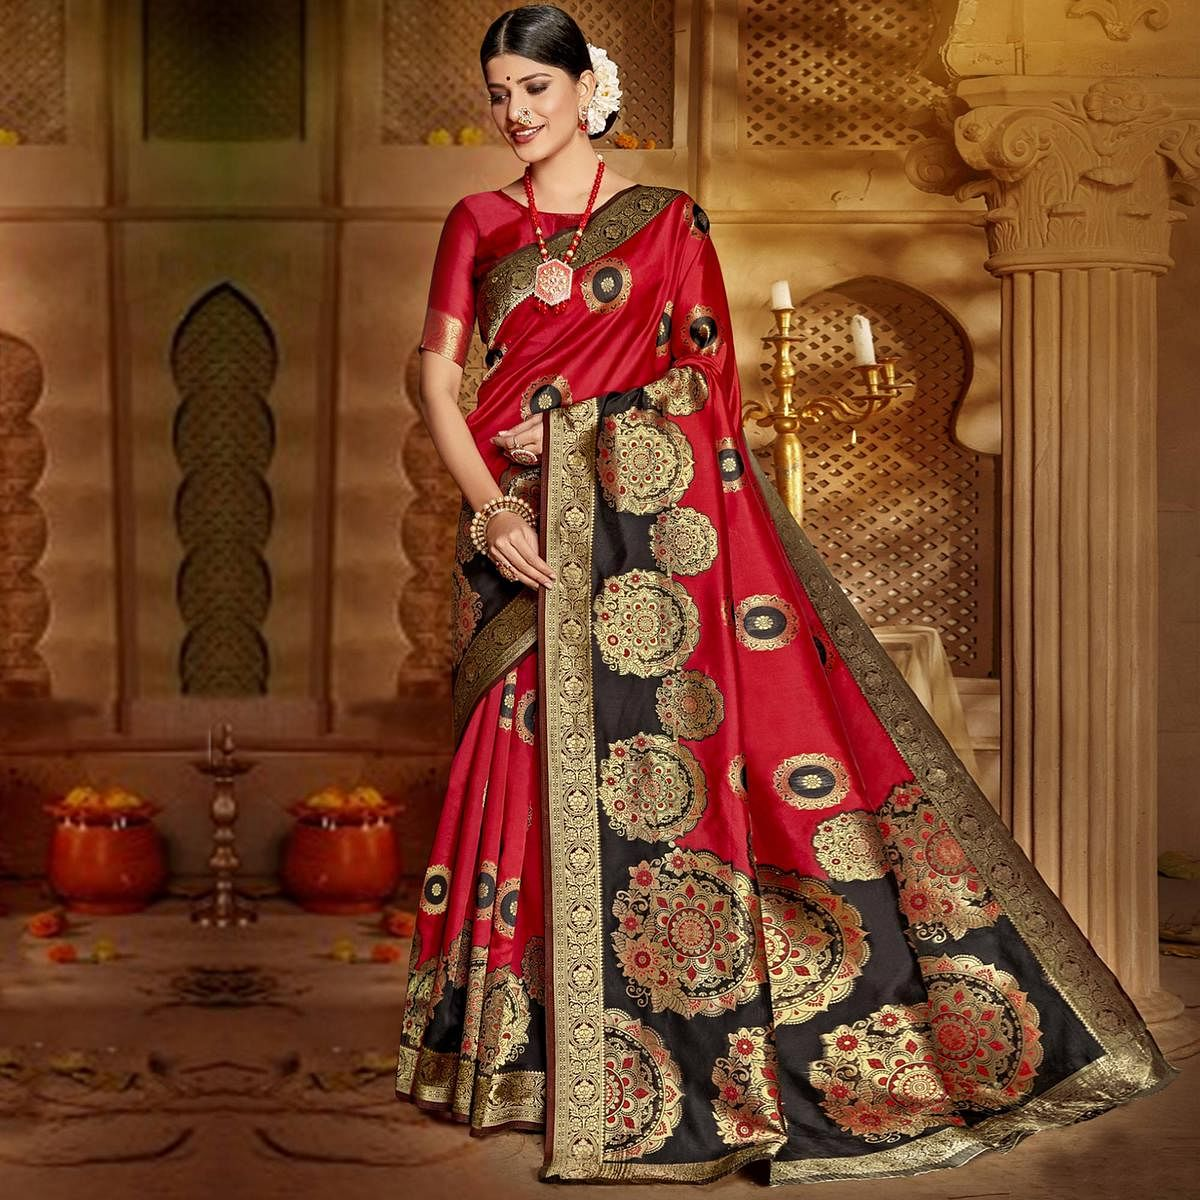 Triveni Red & Black Colored Jacquard Silk Party Wear Jacquard Woven Saree With Blouse Piece